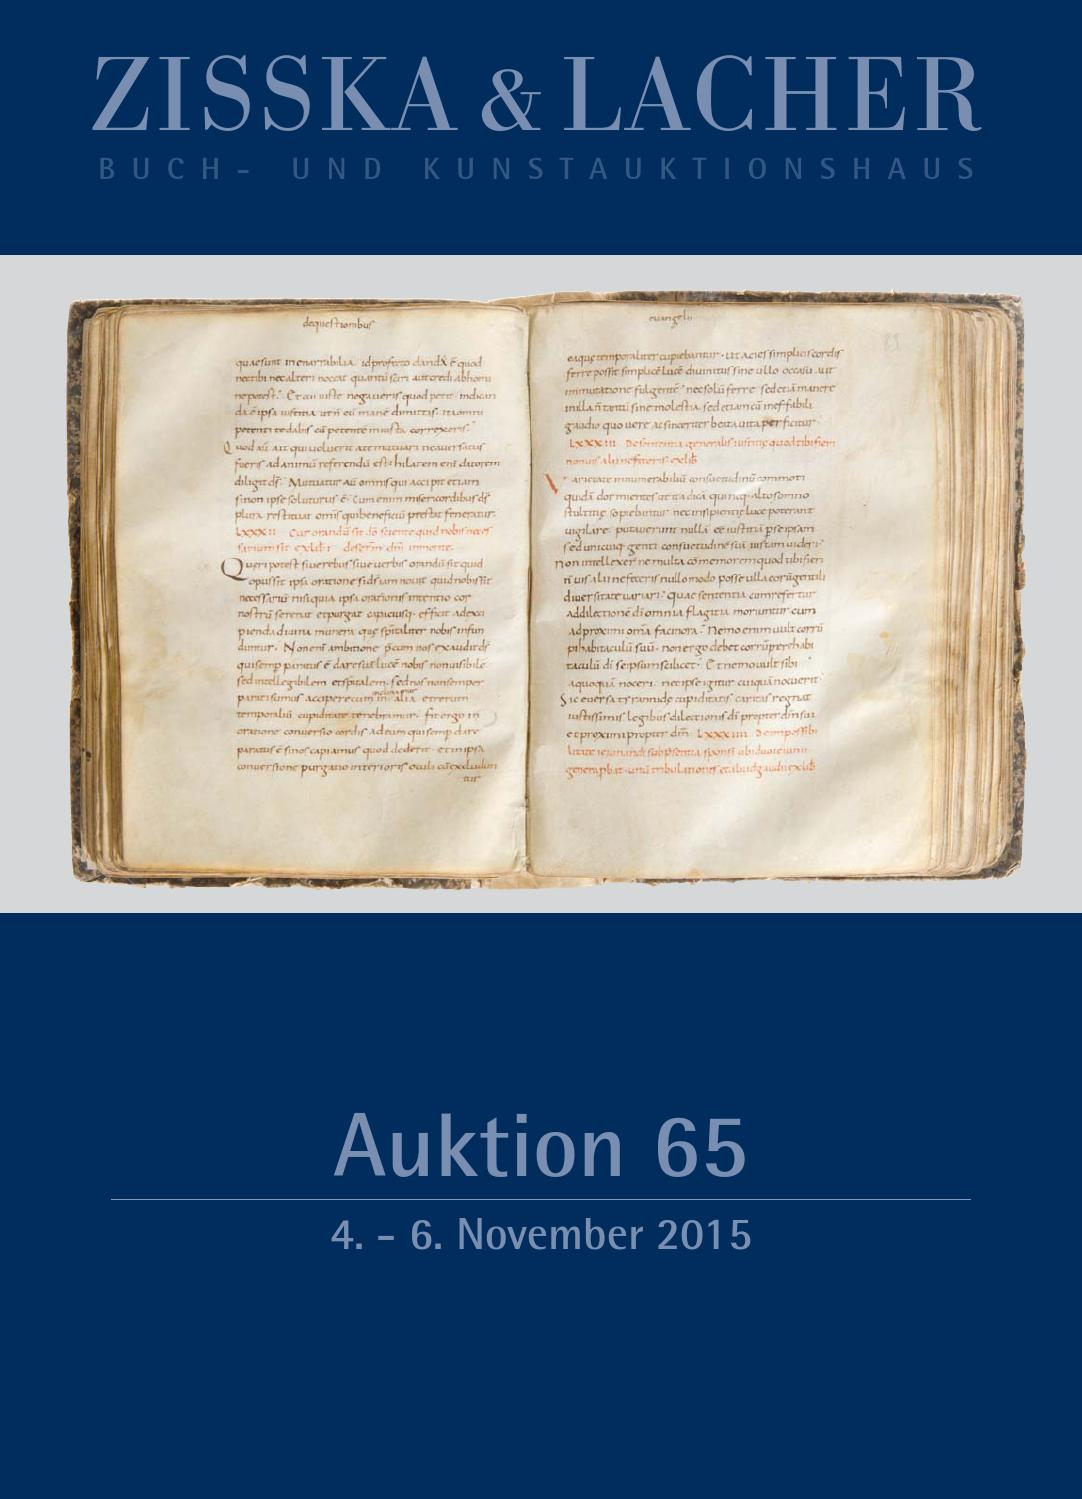 Dan Brown Libros Orden Auktion 65 November 2015 Hauptkatalog Teil 1 By Friedrich